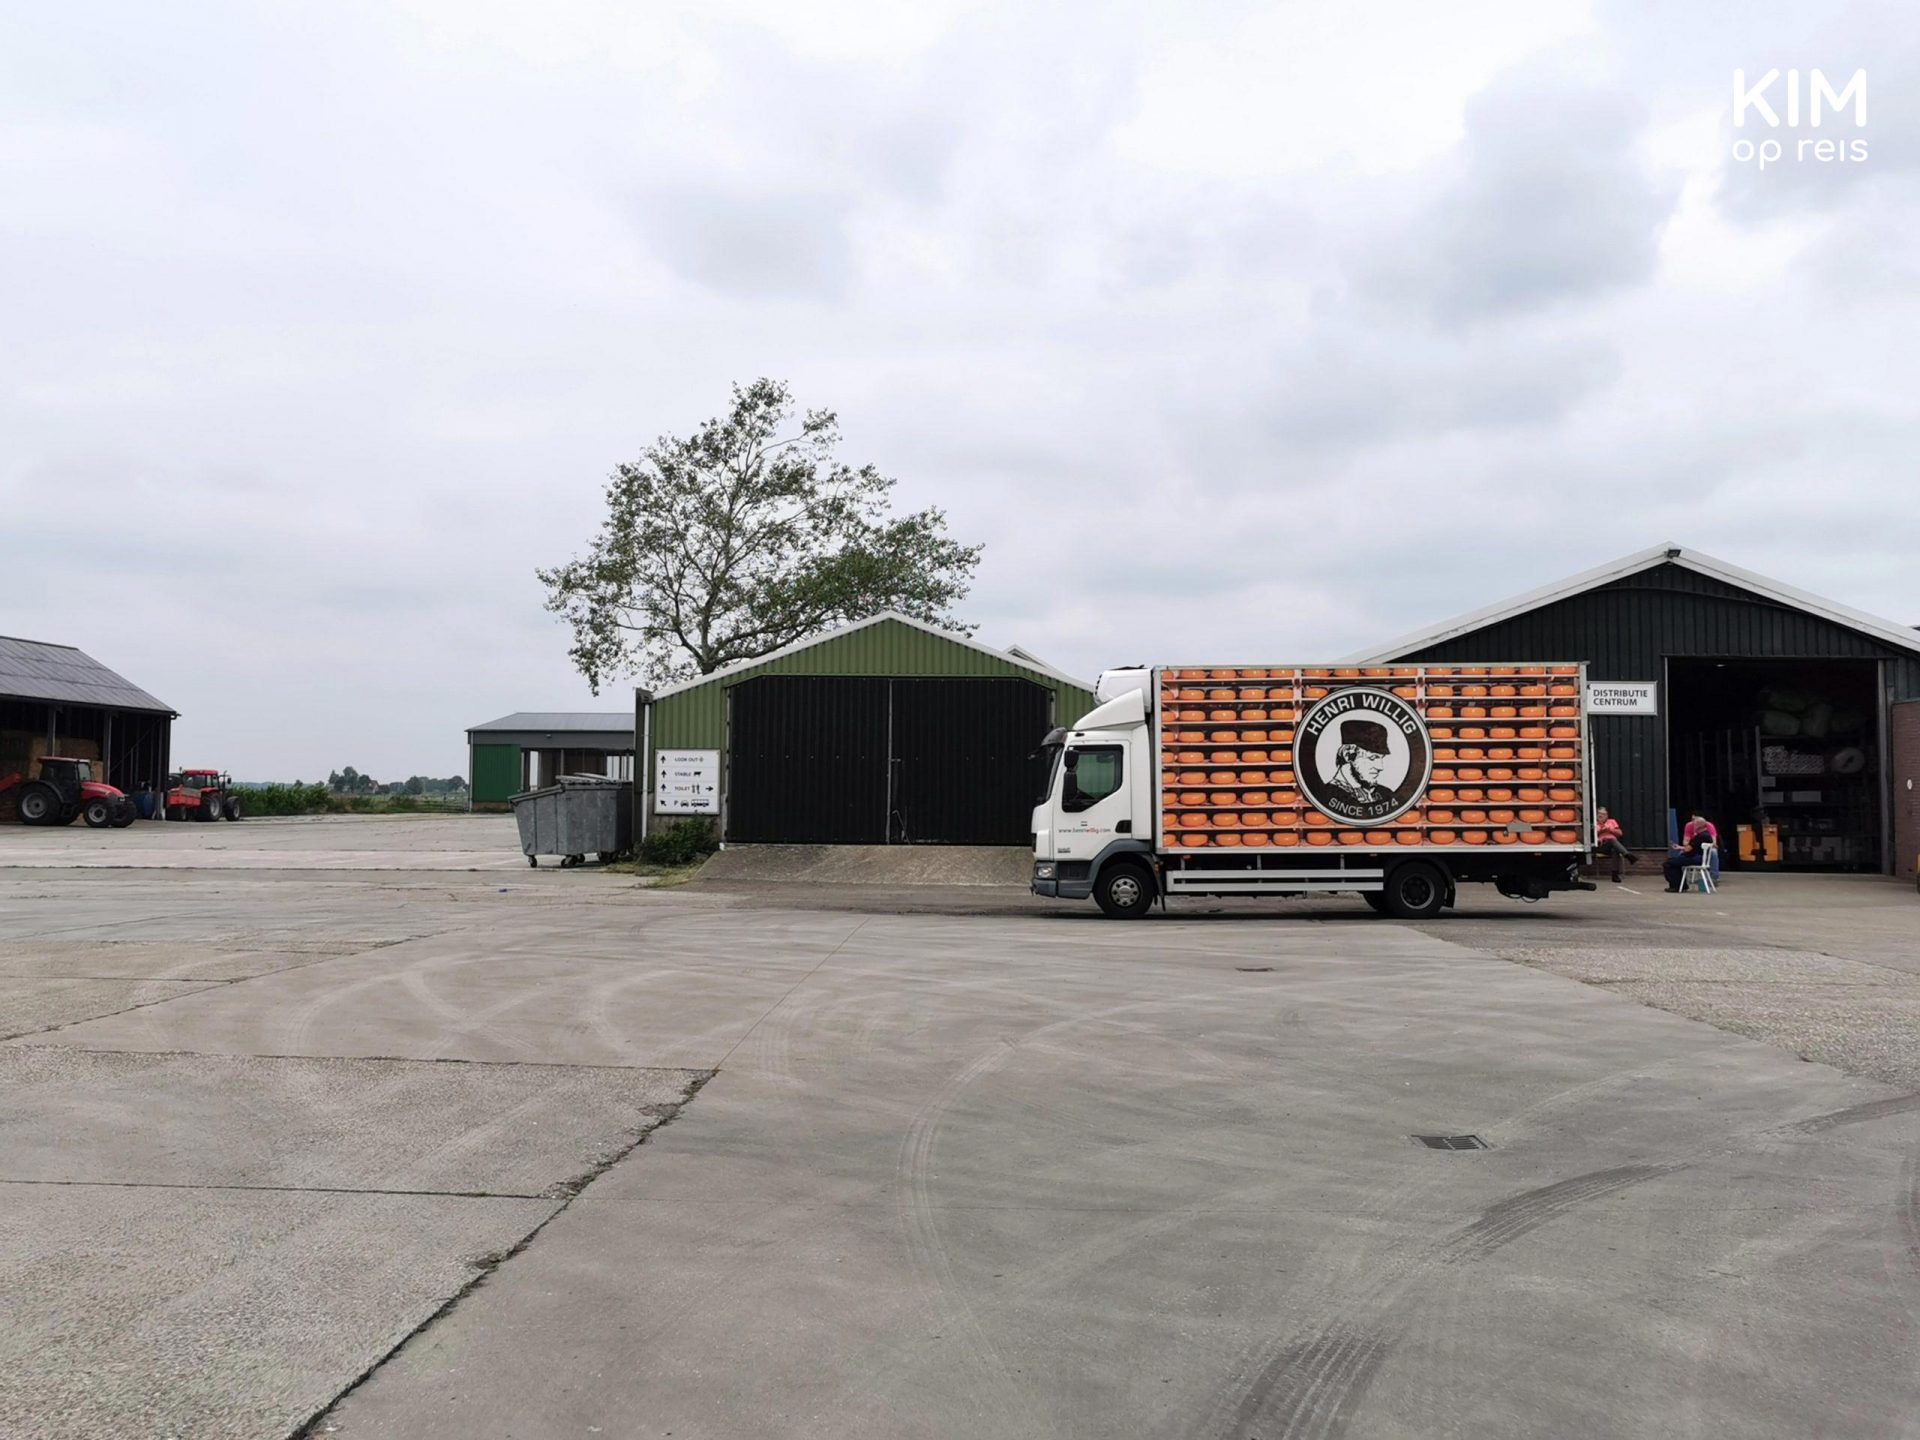 Jacobs Hoeve Henri Willig - empty yard with a small truck depicting cheese racks